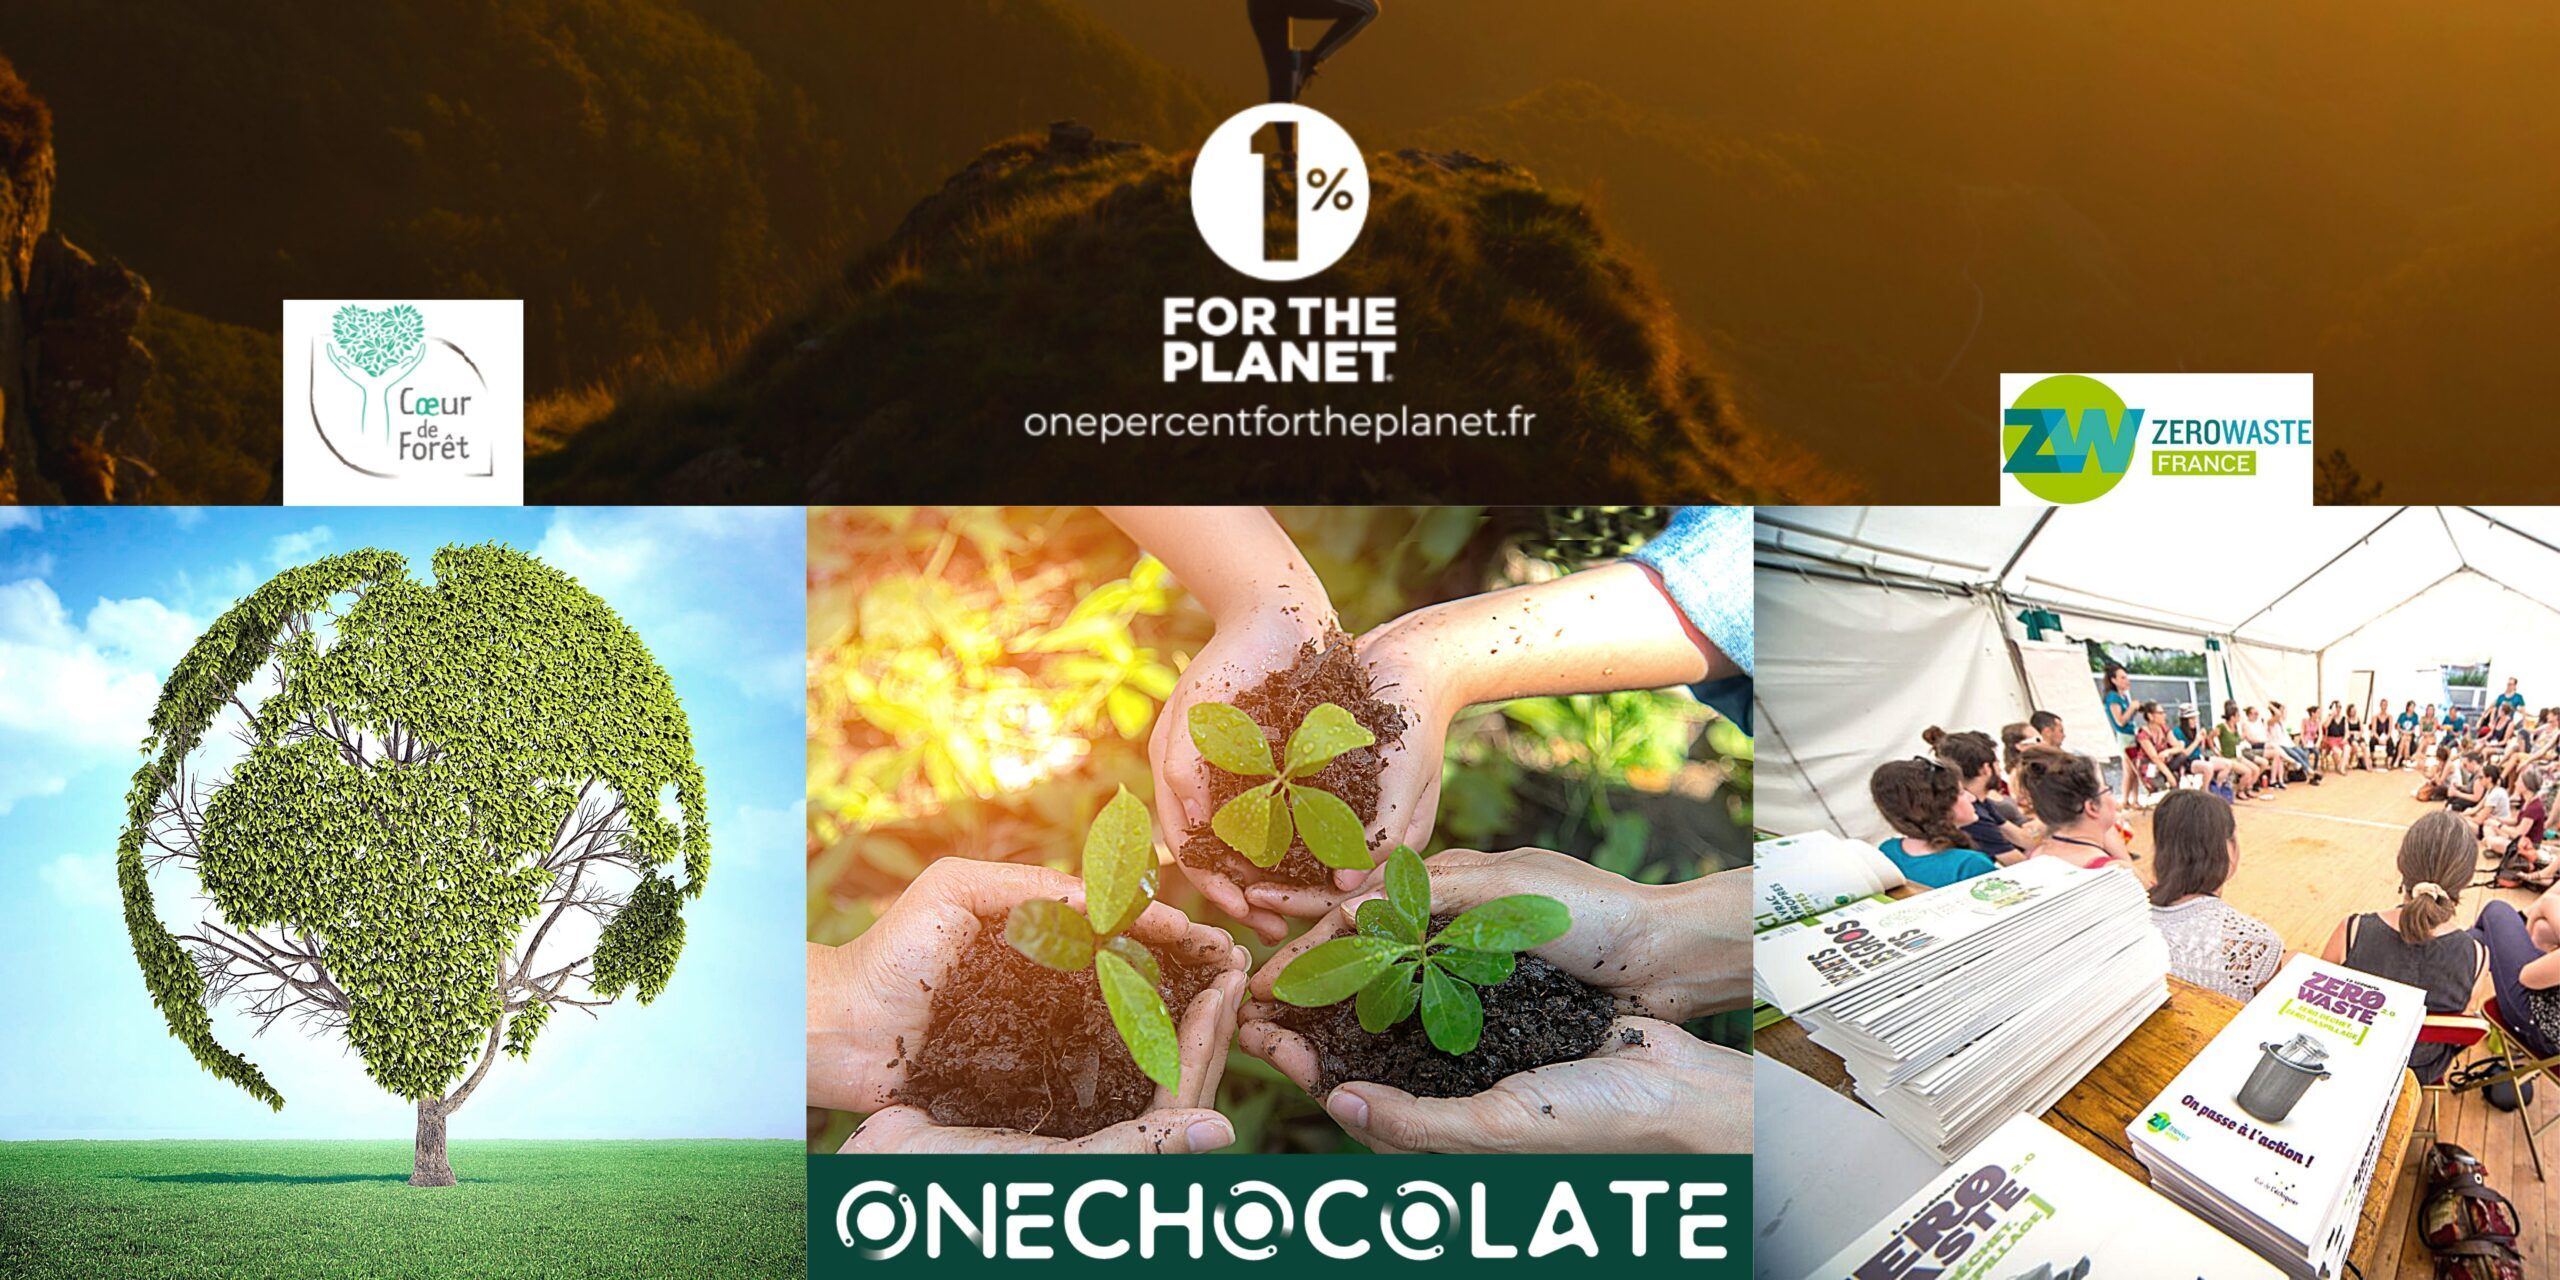 """500 trees and 0 waste – OneChocolate keeps its commitment to """"1% for the Planet"""""""